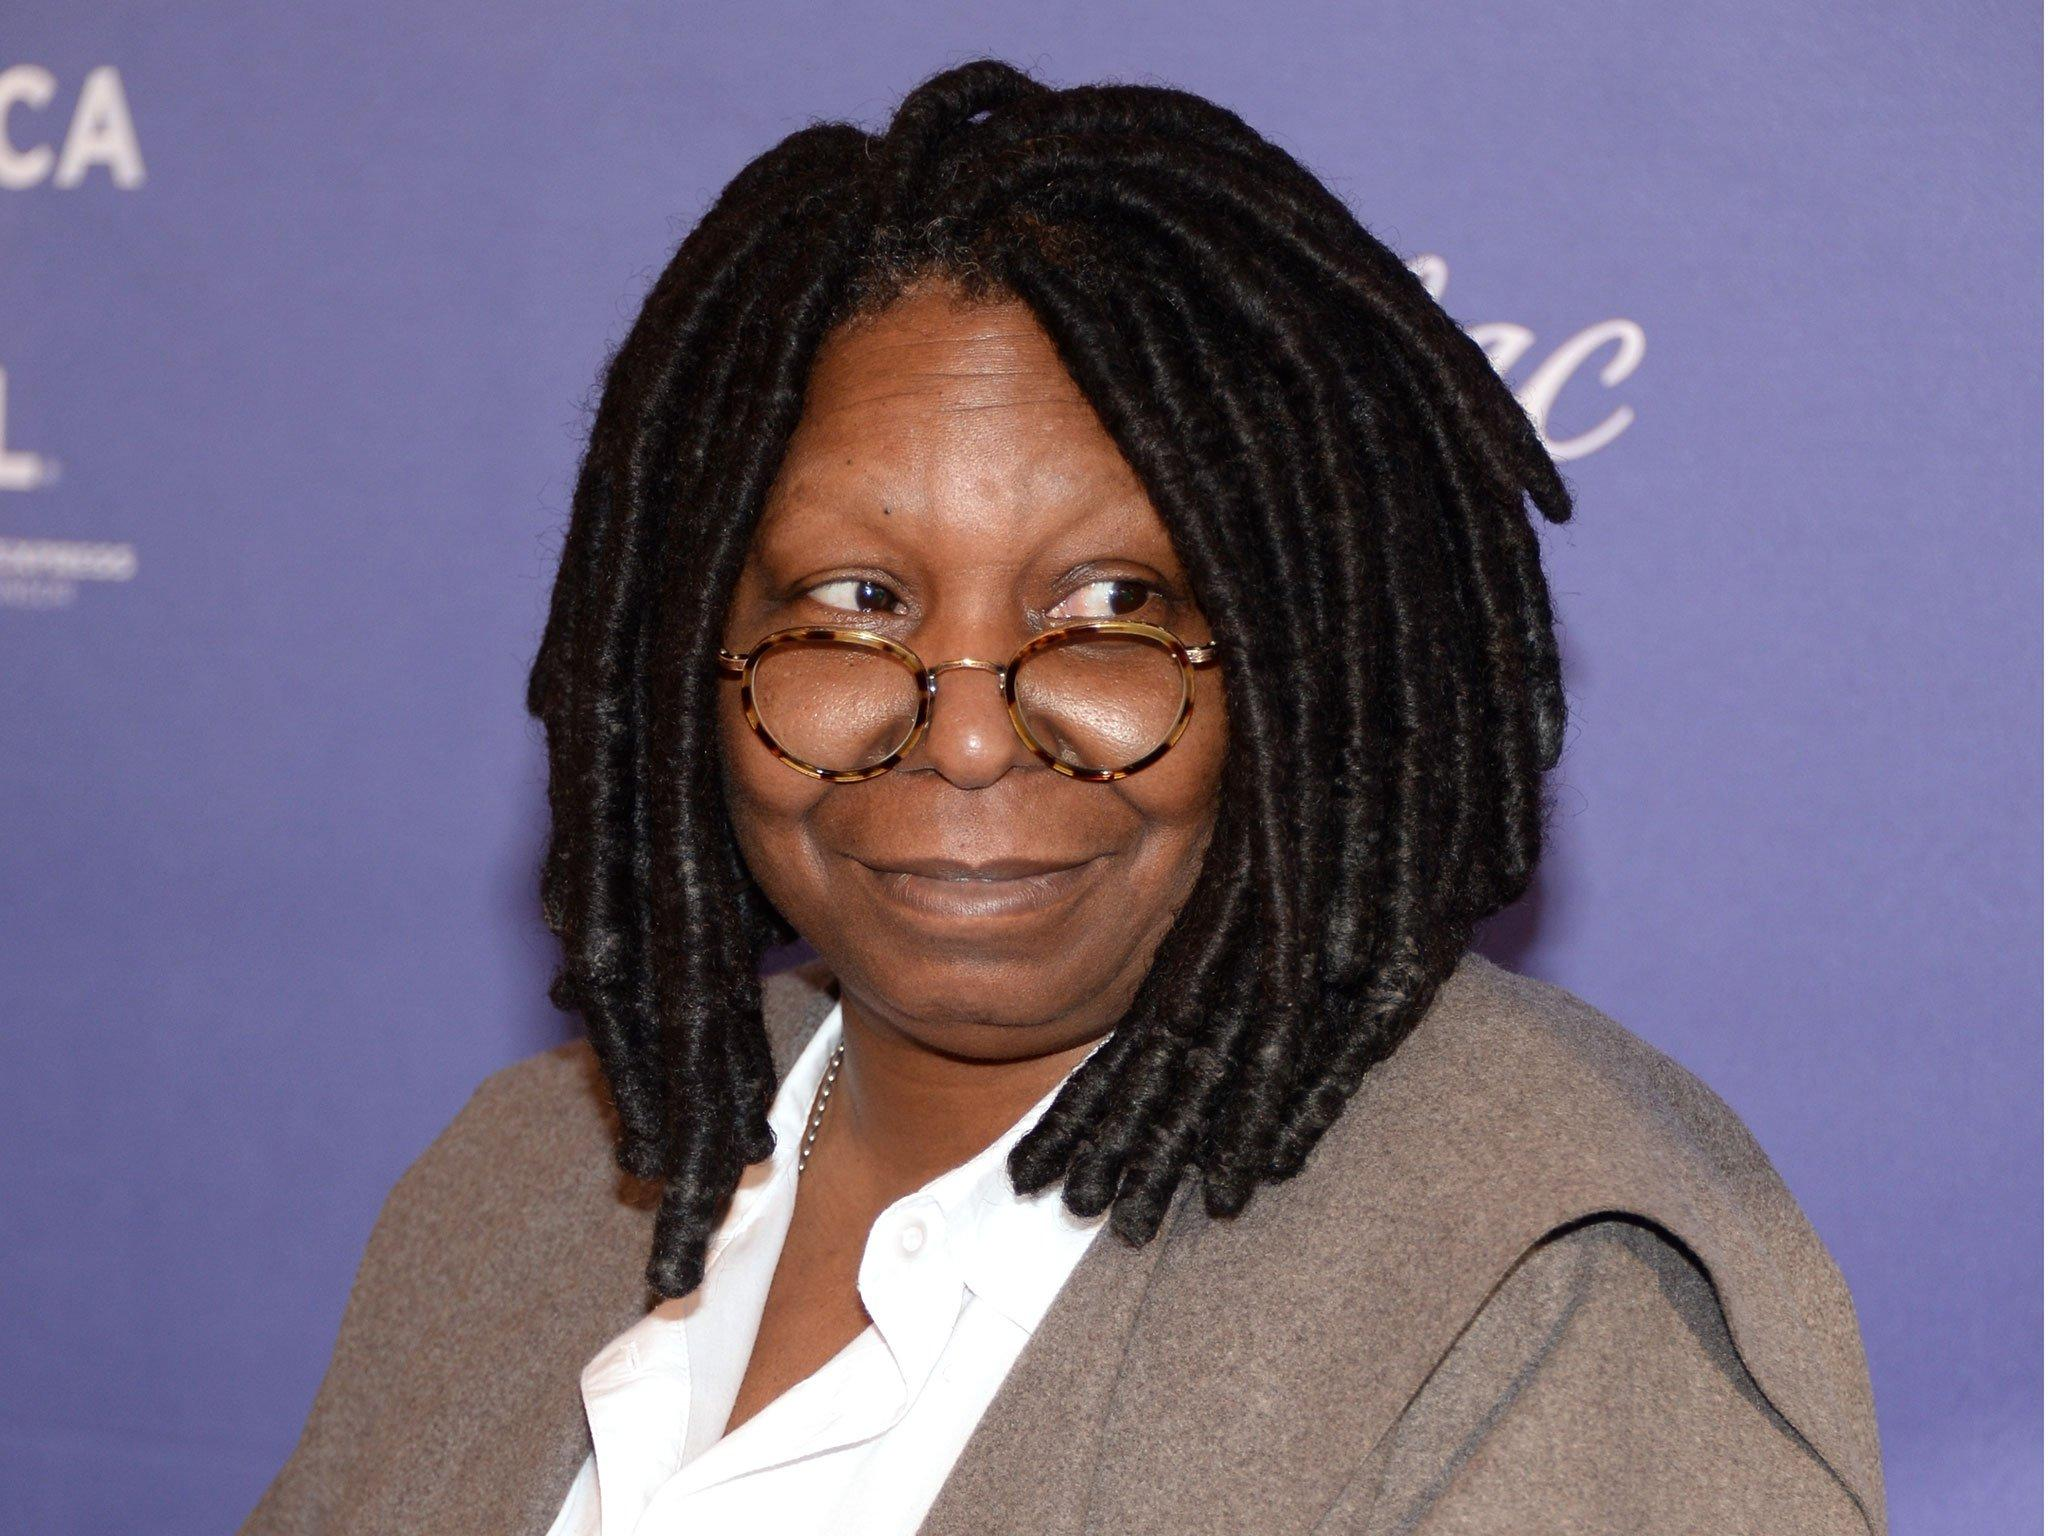 Whoopi Goldberg defends Bill Cosby over rape allegations: 'I have a ...